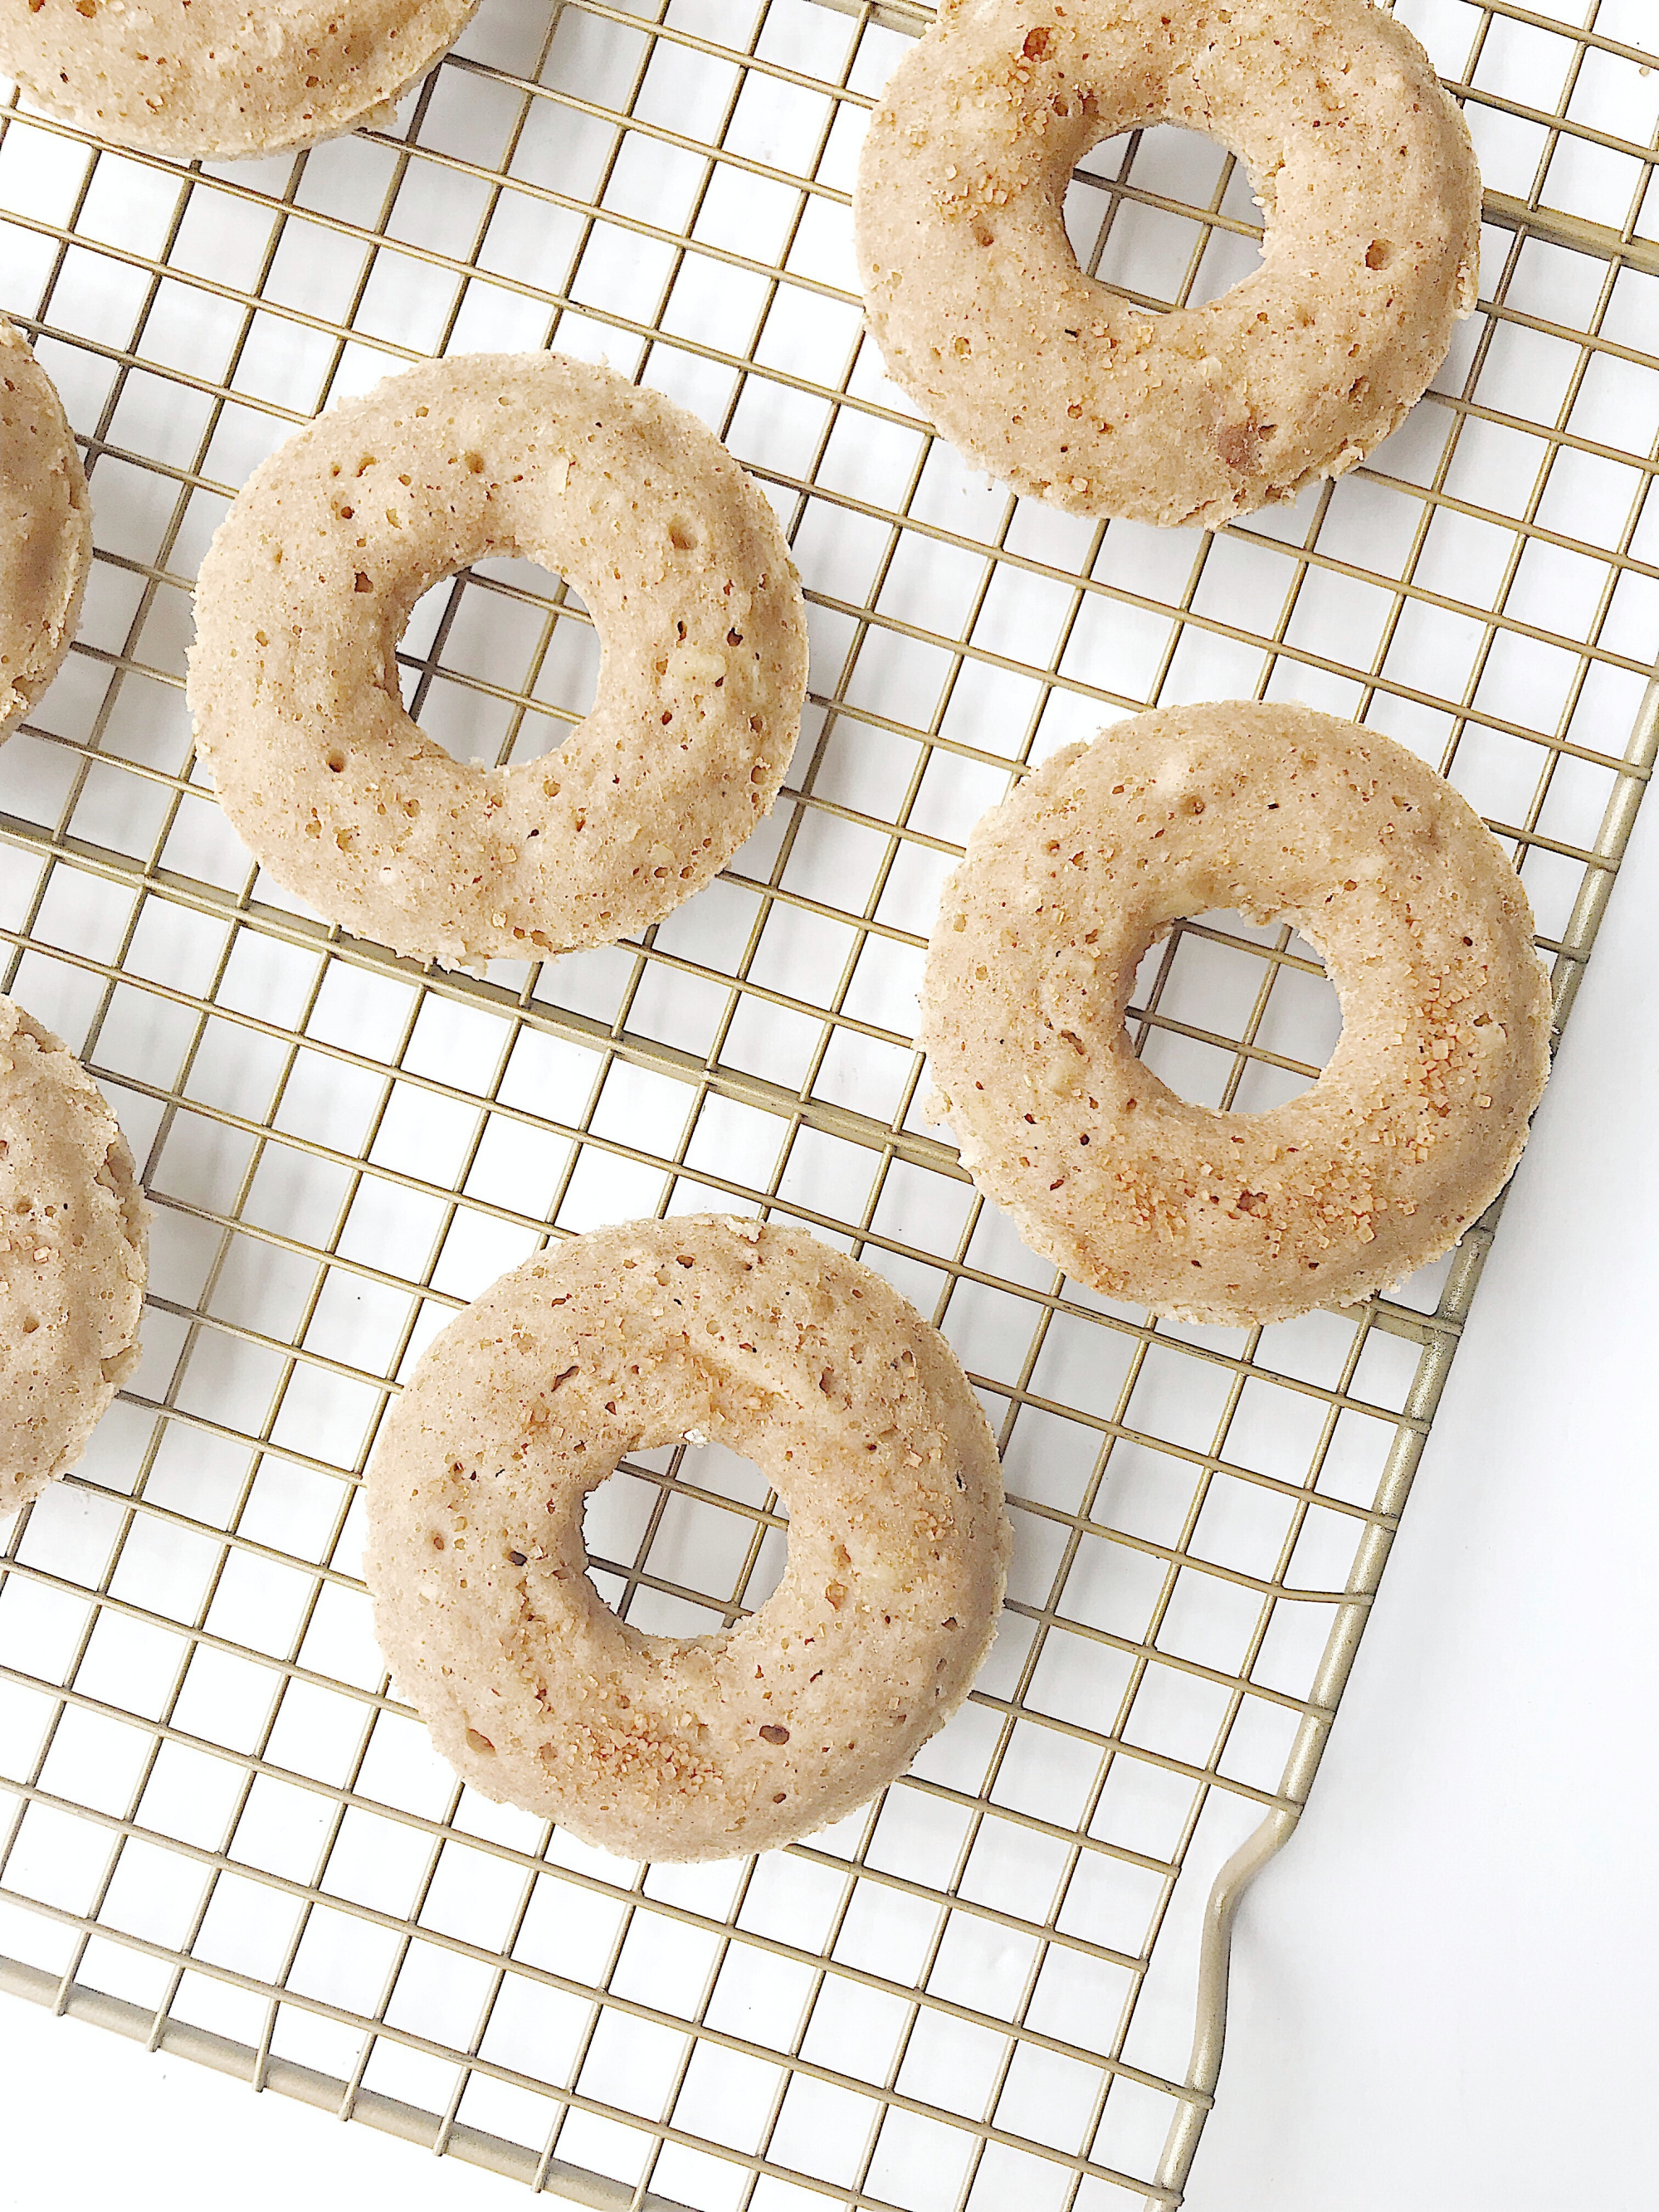 DONUTS ARE MY LOVE LANGUAGE: APPLE CINNAMON BAKED DONUTS